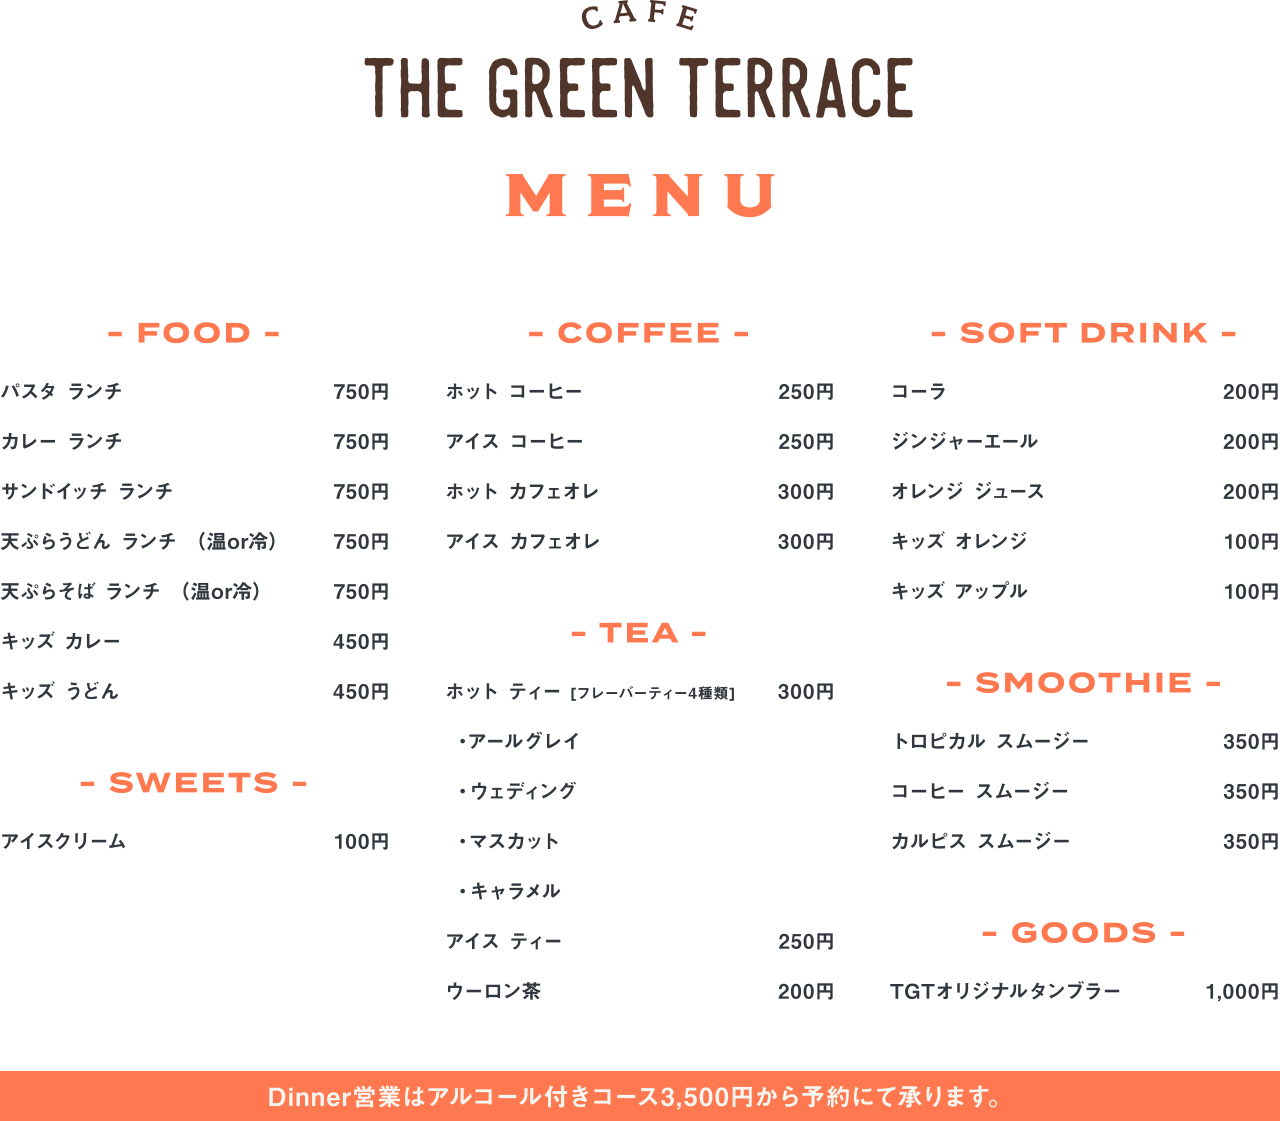 CAFE GREEN TERRACE